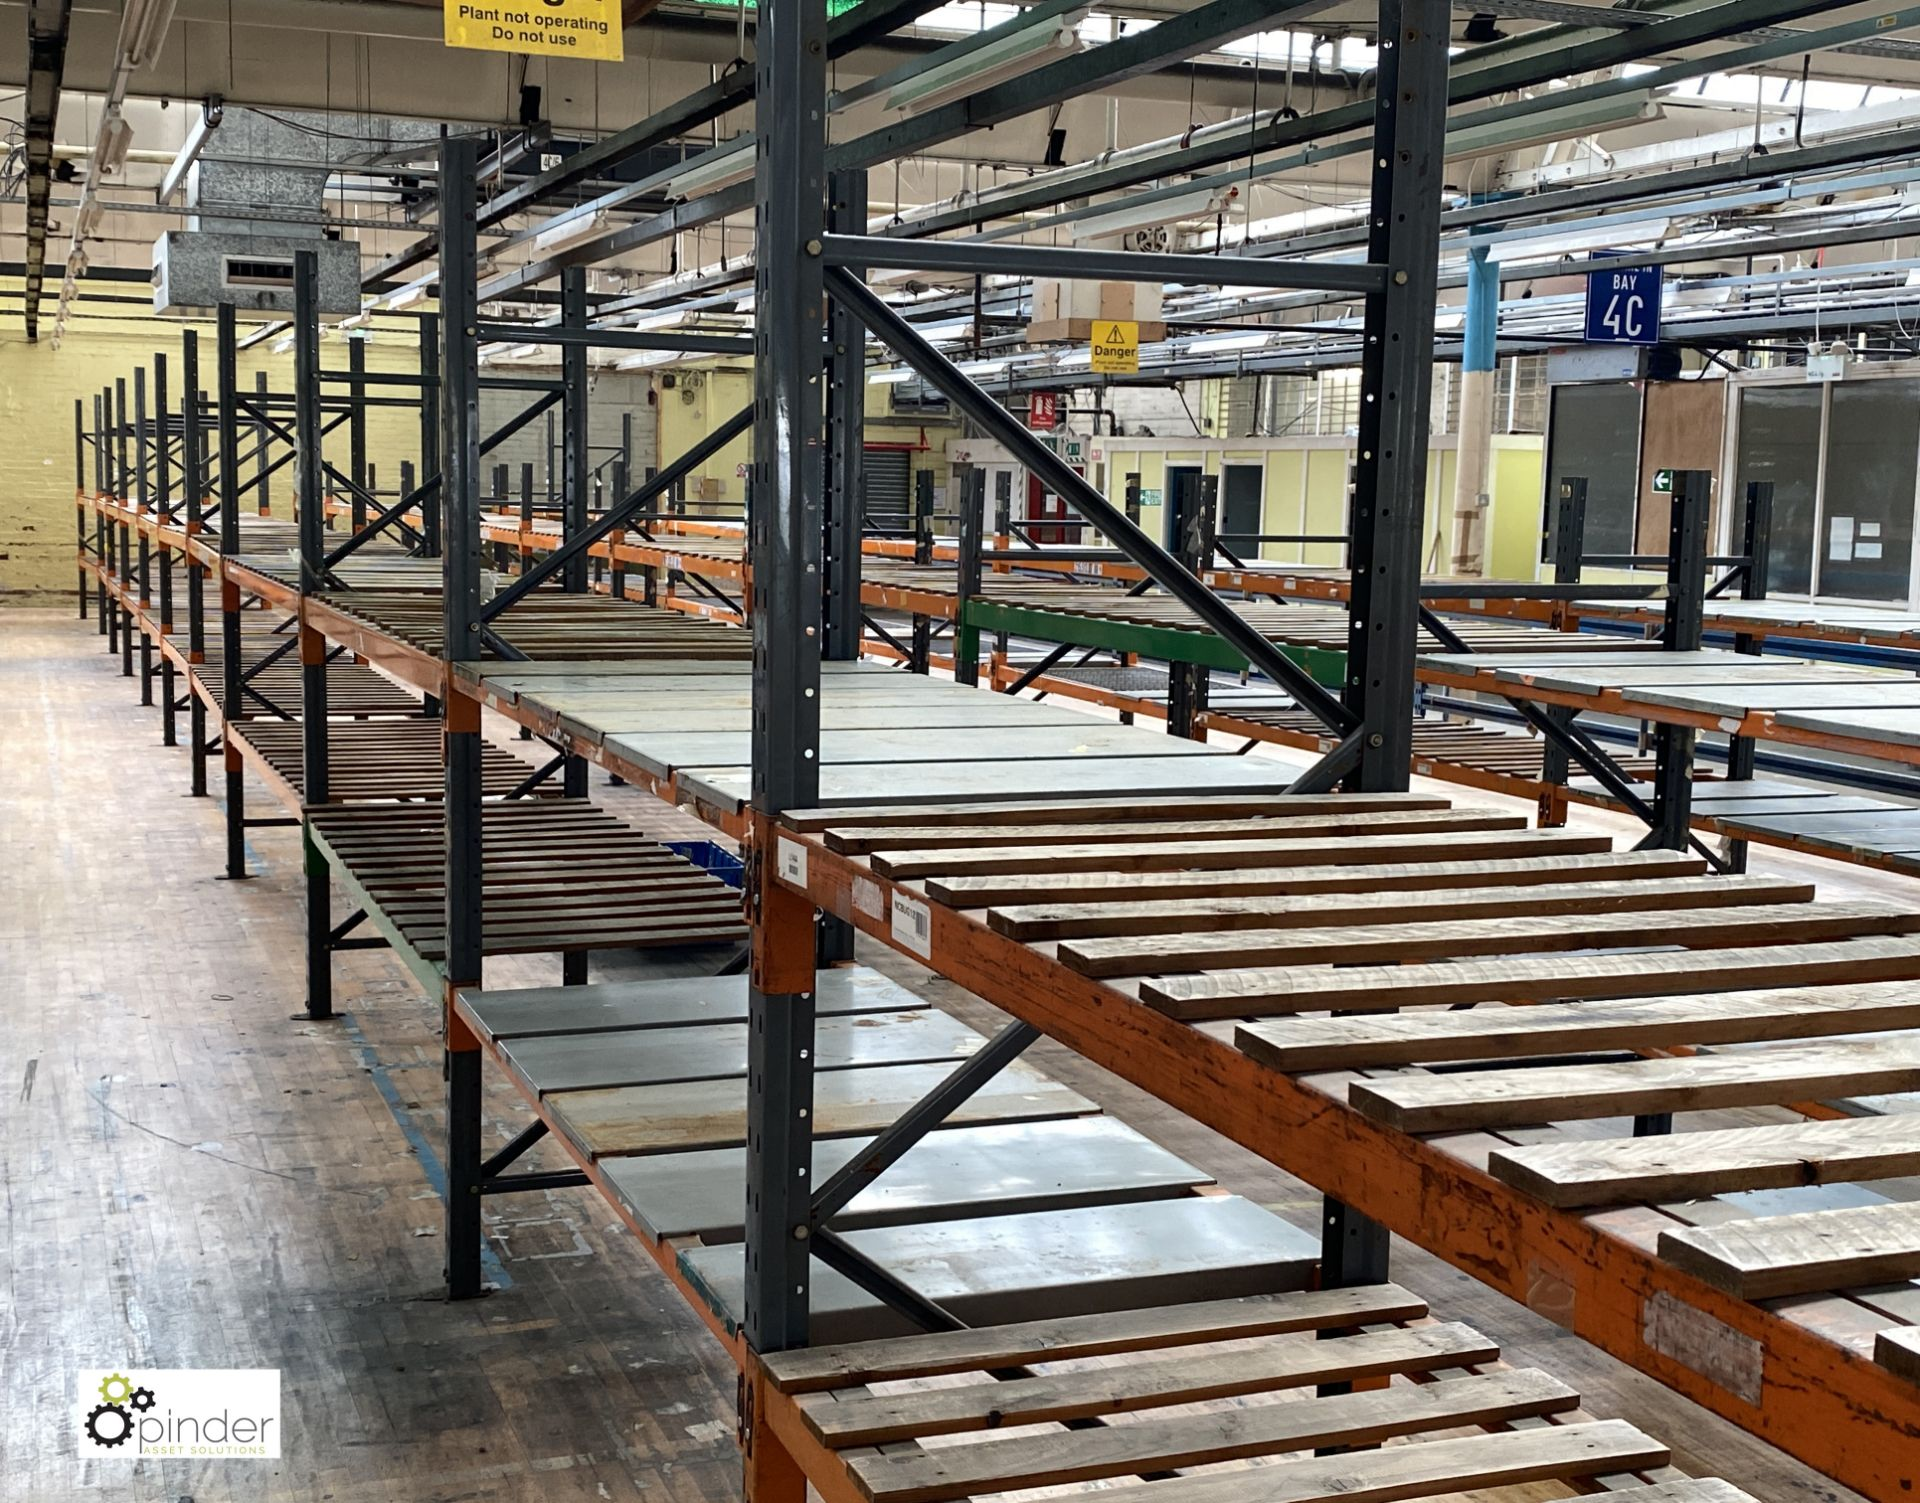 12 bays Dexion Speedlock boltless Racking, comprising 12 uprights 2440mm x 910mm, 1 upright 1835mm x - Image 3 of 5